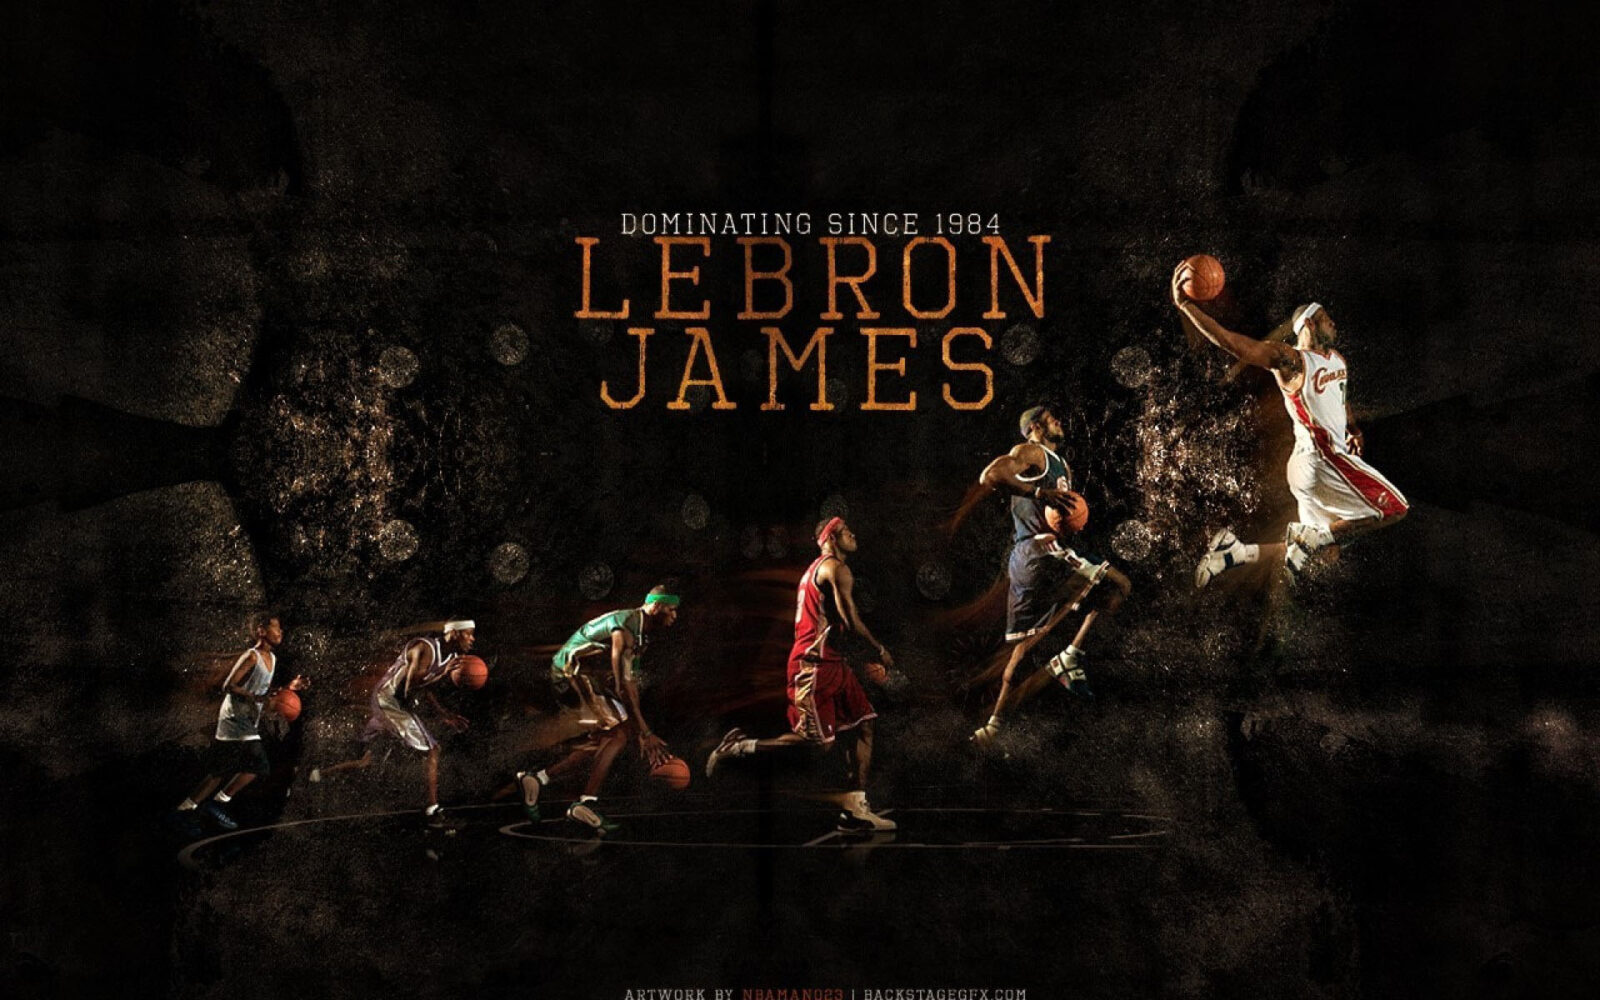 48 LeBron James Wallpapers HD Free Download